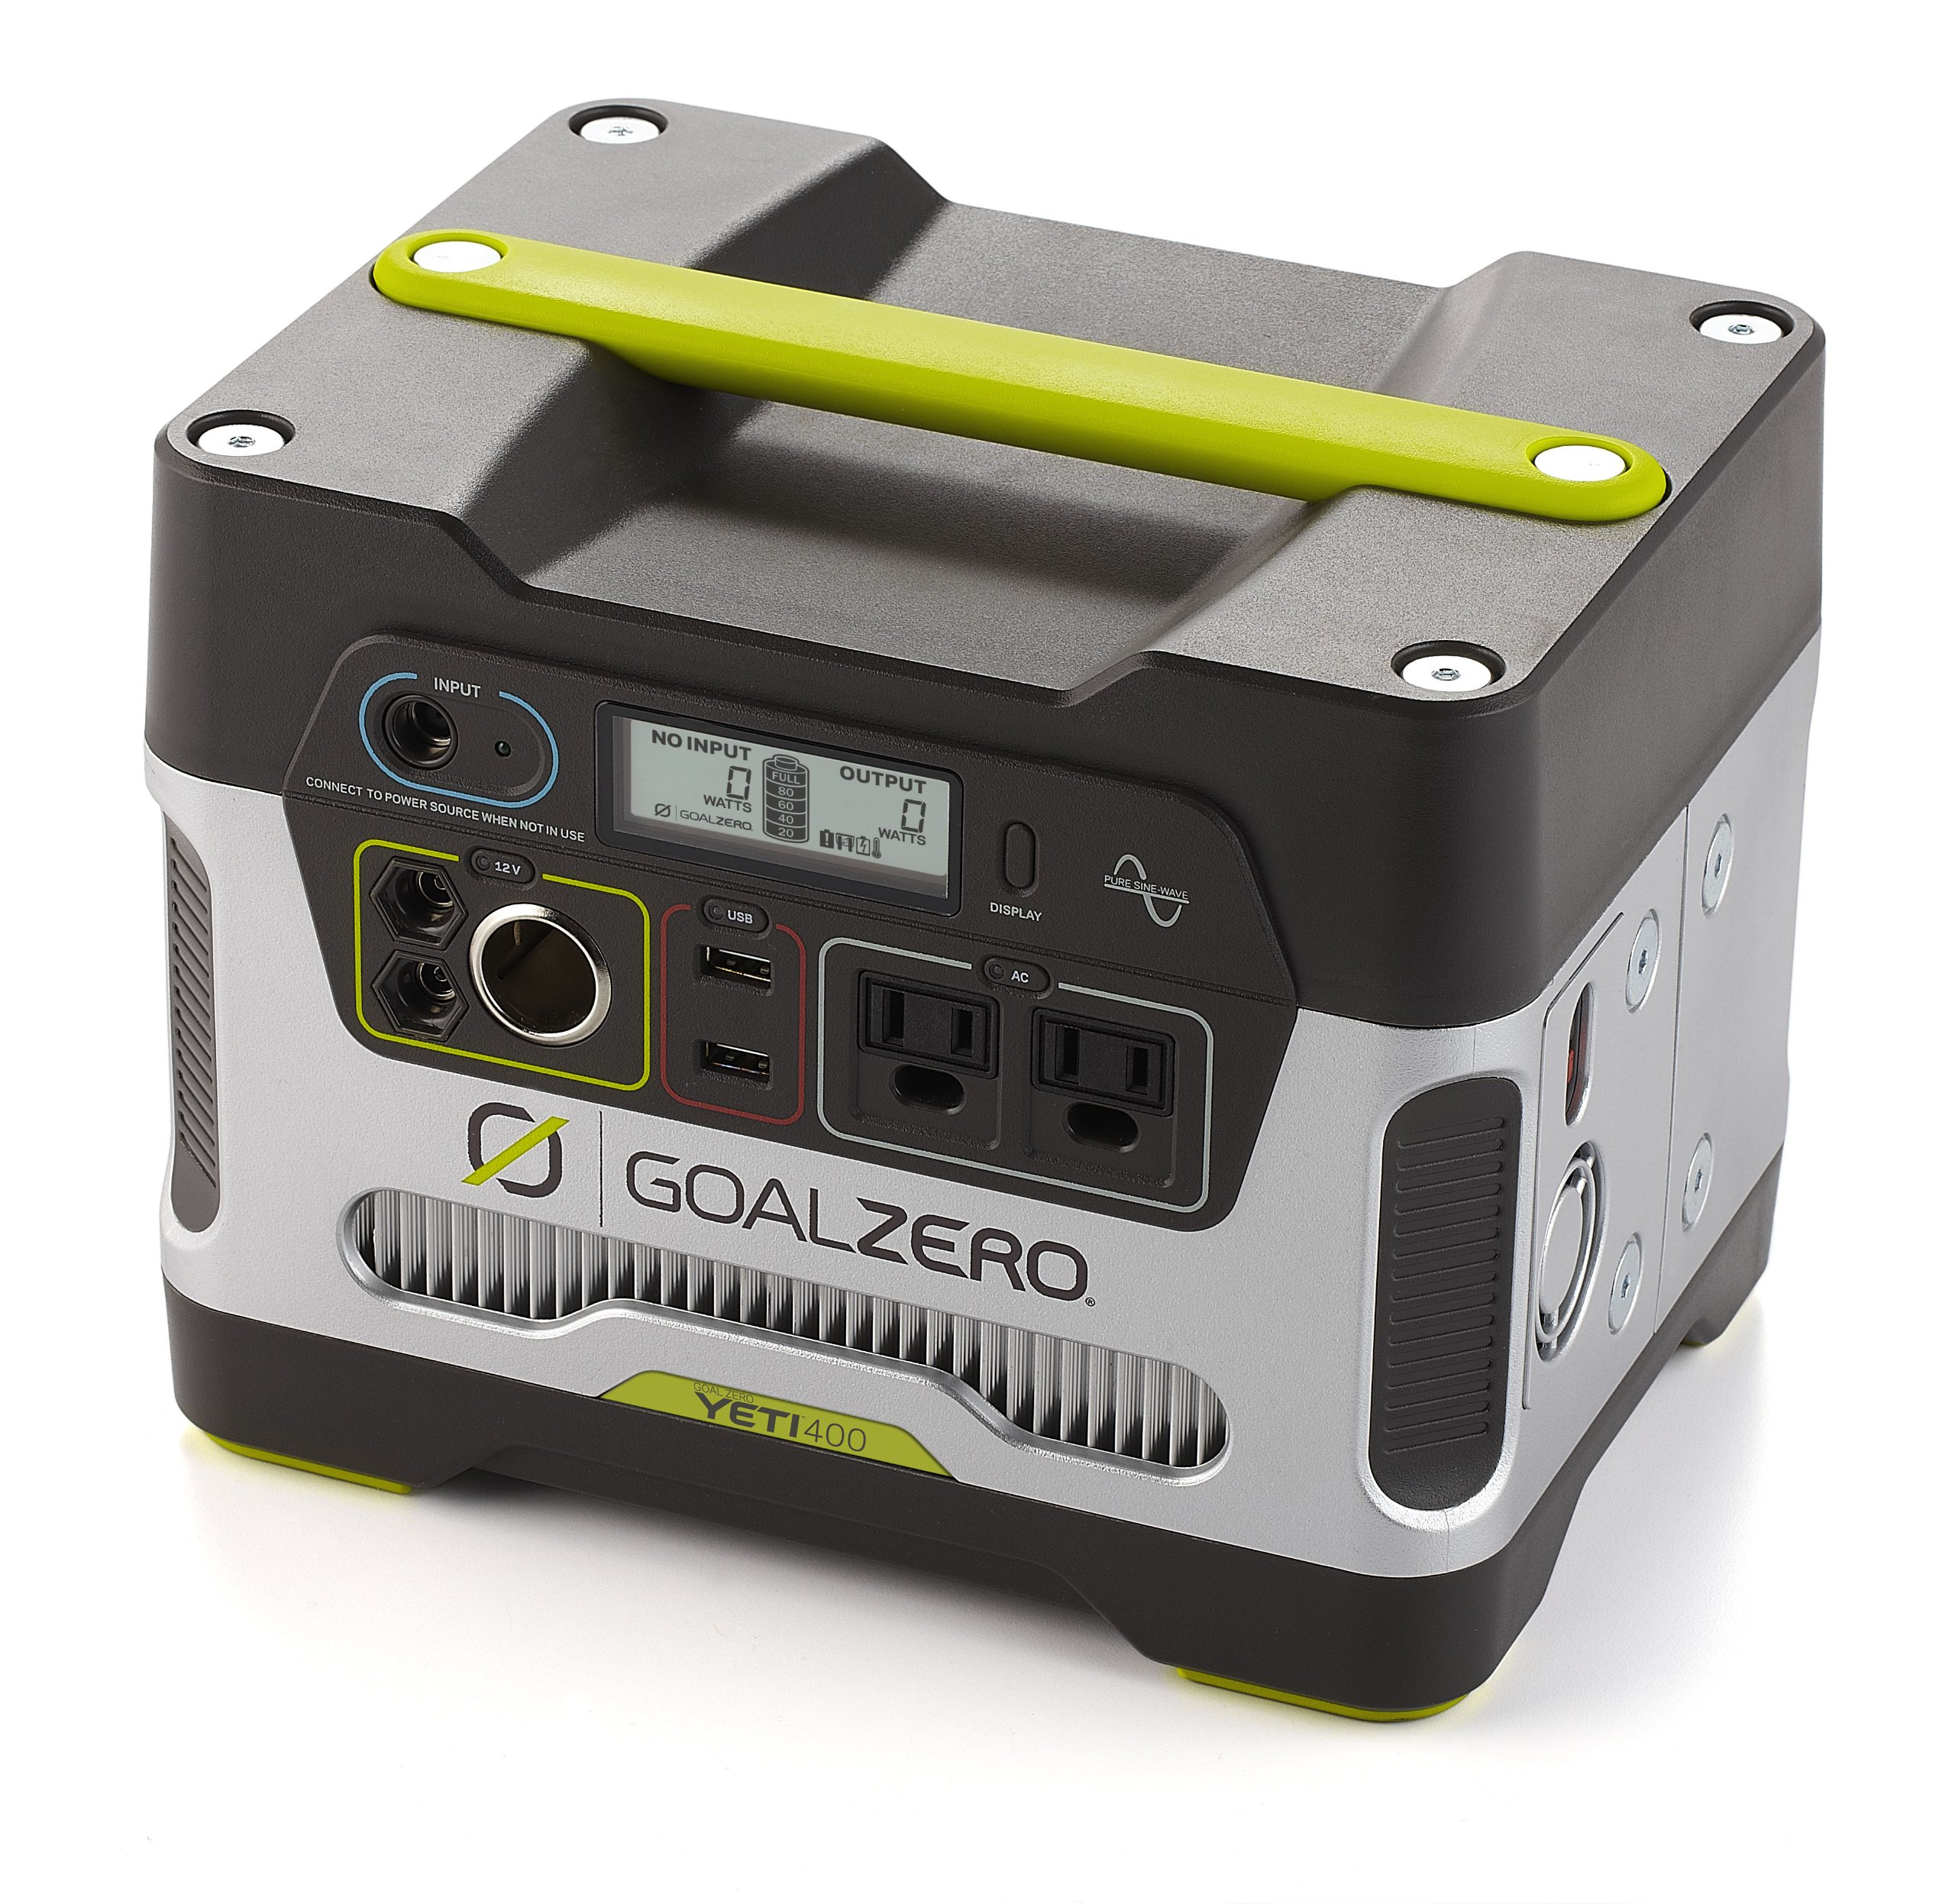 Goal Zero Yeti 400 Portable Power Station, 400Wh Battery Powered Generator Alternative with 12V, AC and USB Outputs by Goal Zero (Image #2)